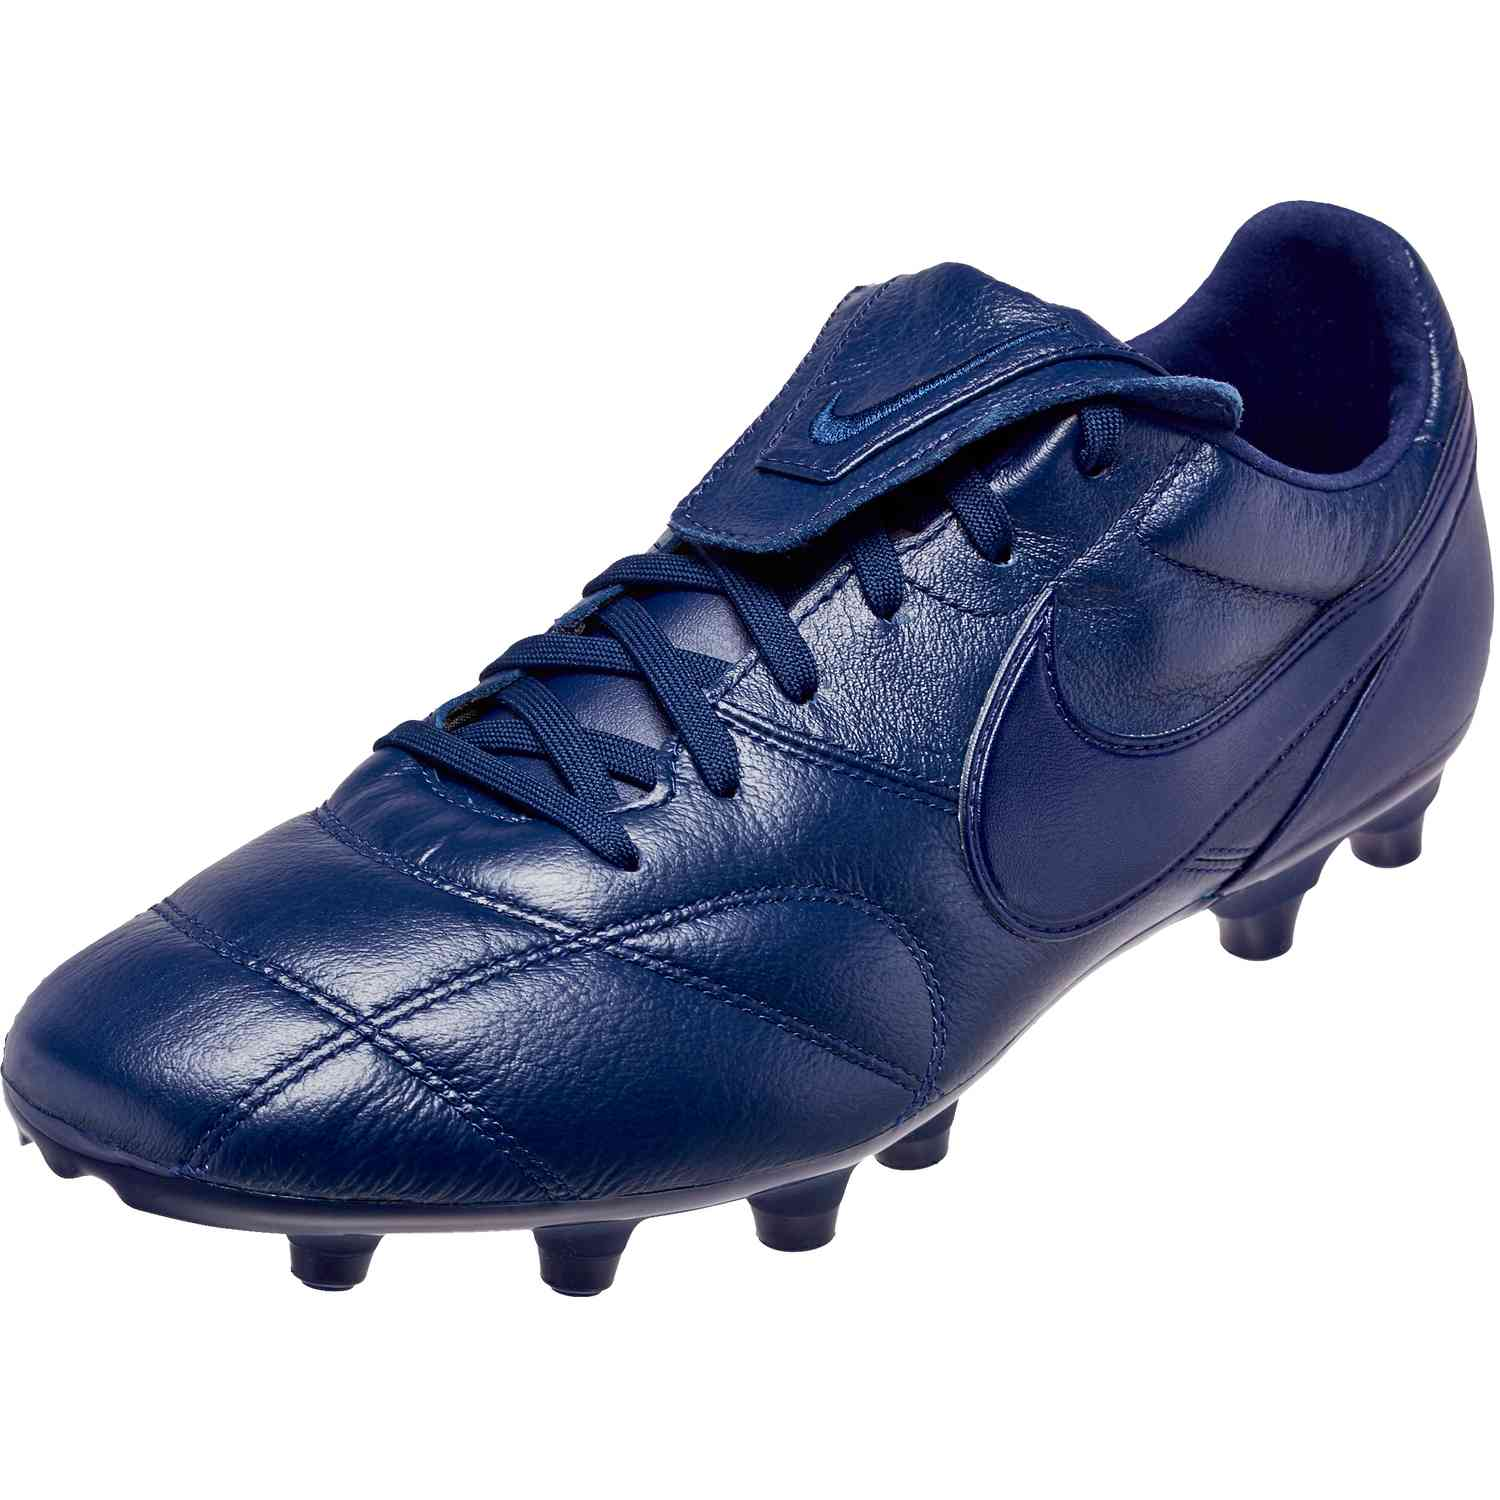 79cd39b2b824 Nike Premier II FG - Midnight Navy Midnight Navy - SoccerPro